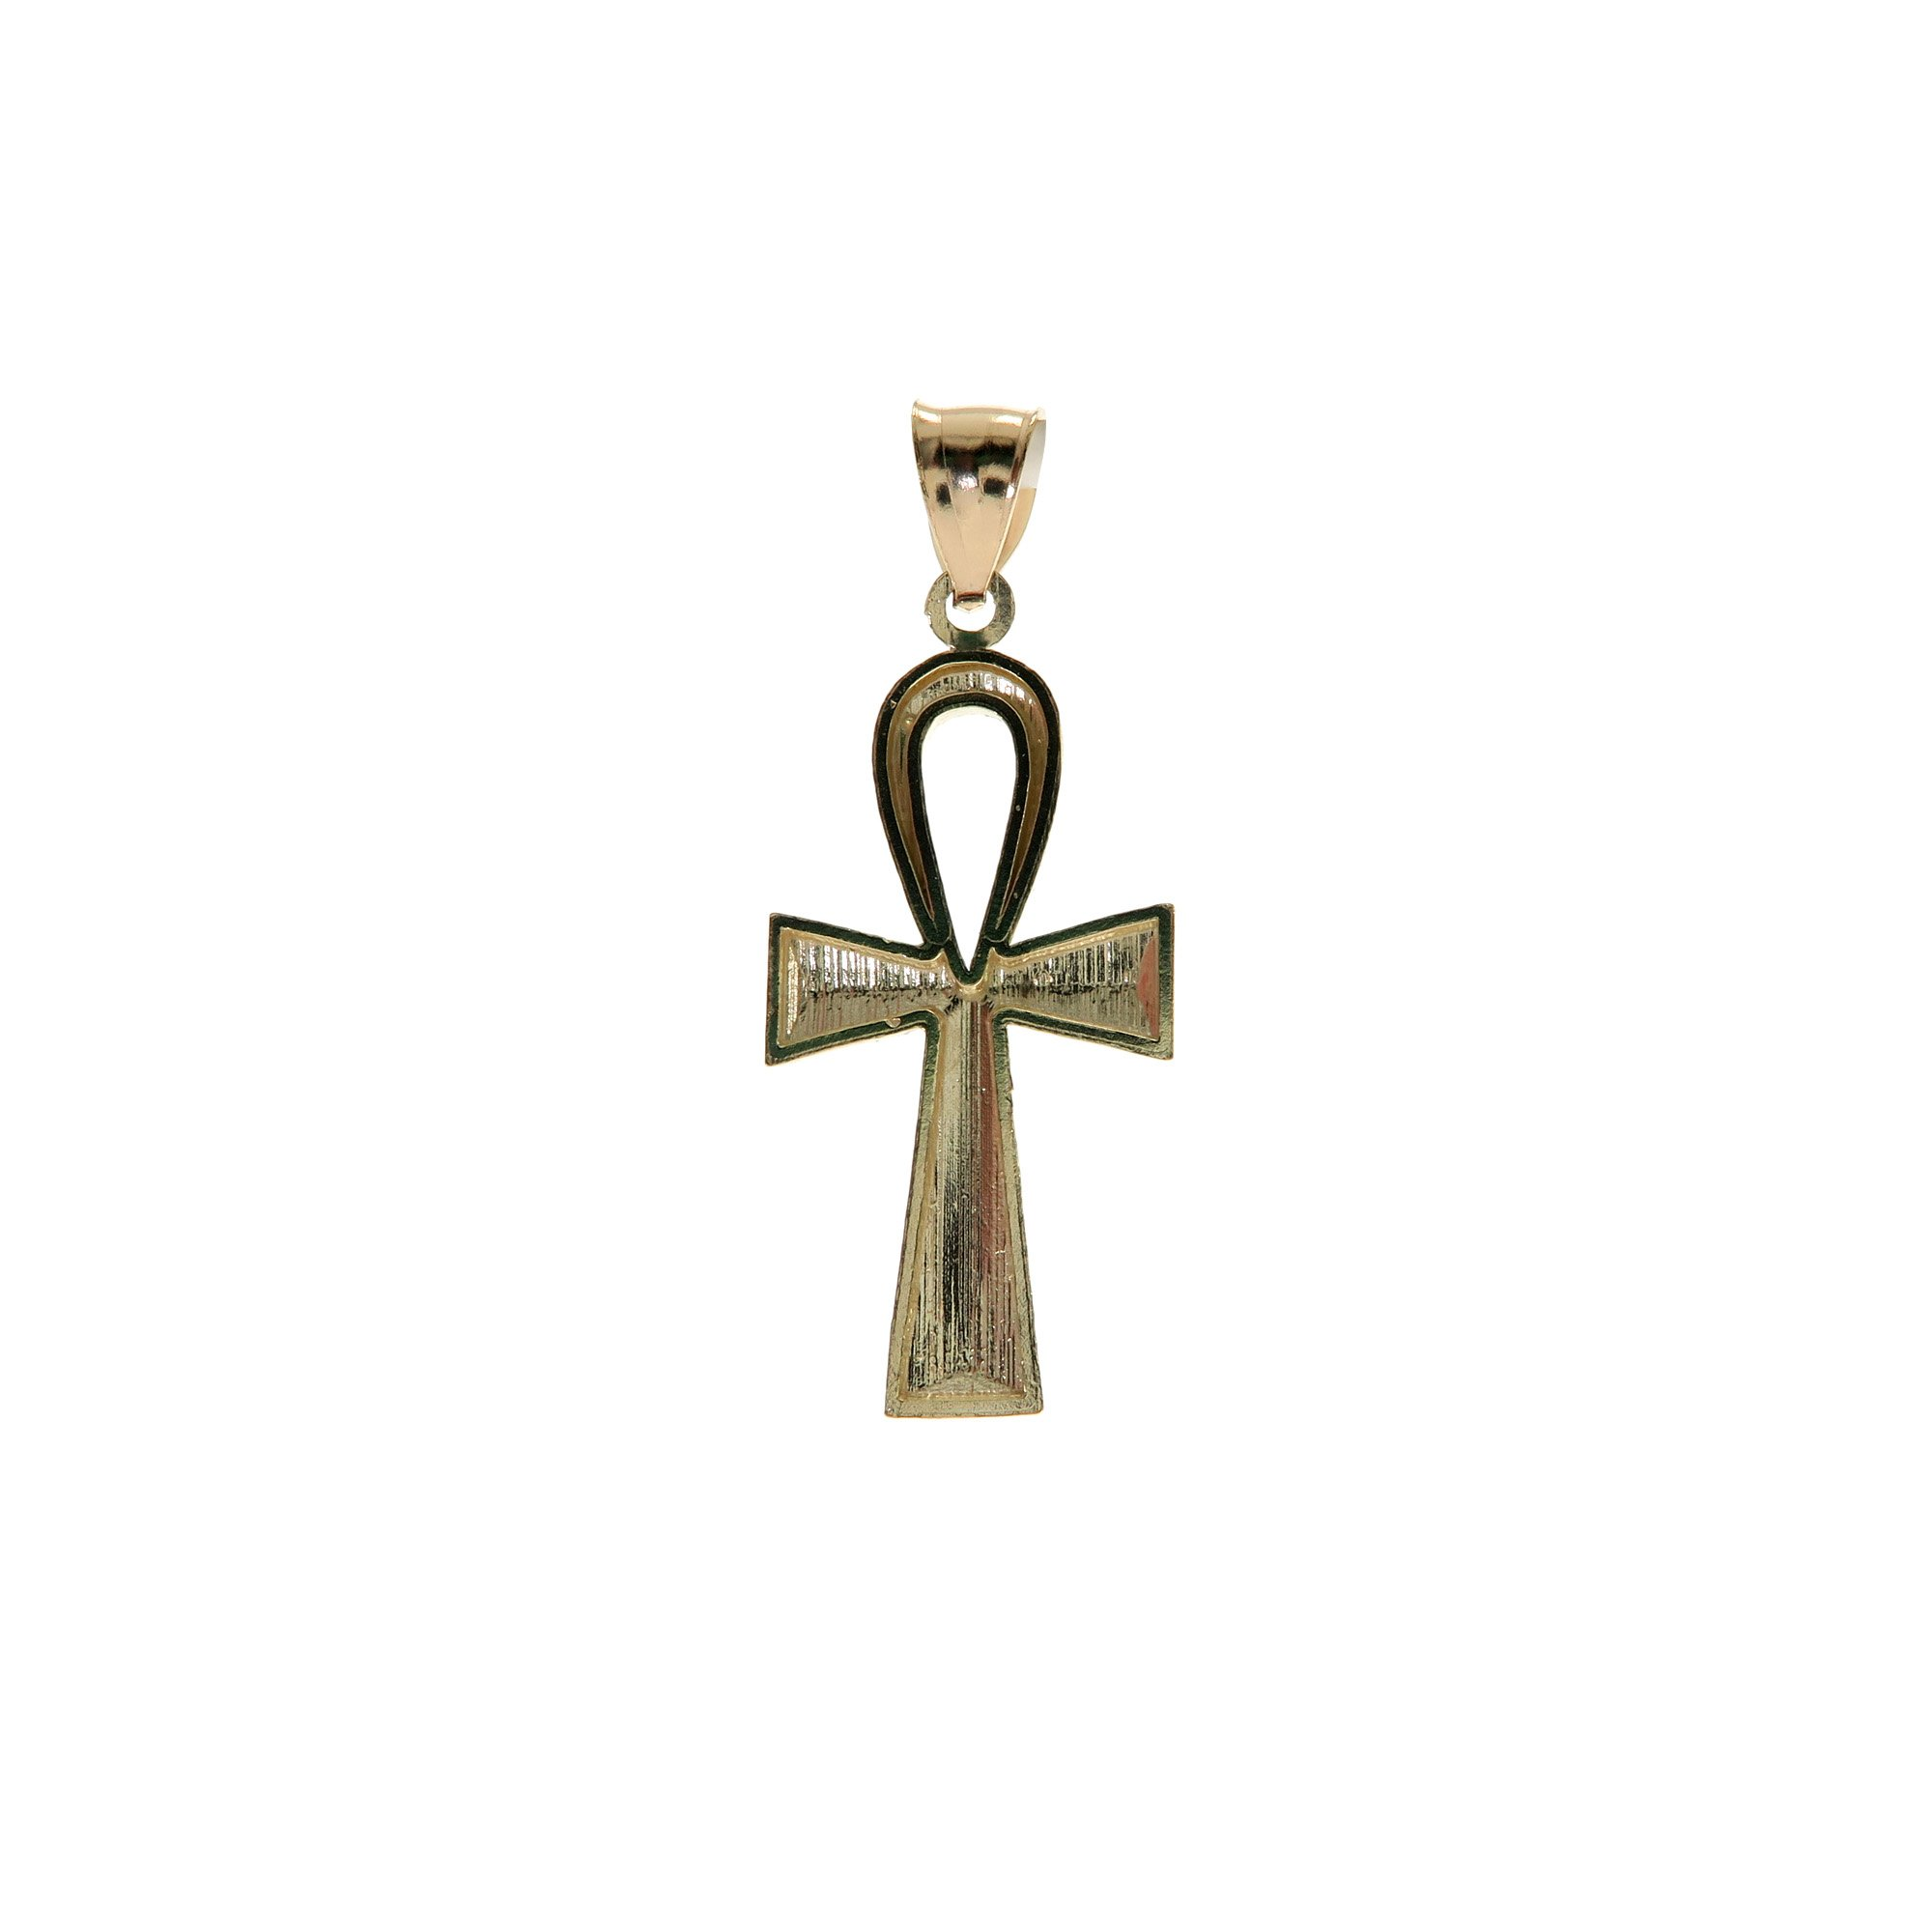 Genuine Stamped Authentic 10K Yellow Two-Tone Gold Charm Pendant Hip Hop Jewelry Gift Christmas Present (Ankh Cross) by Traxnyc (Image #2)